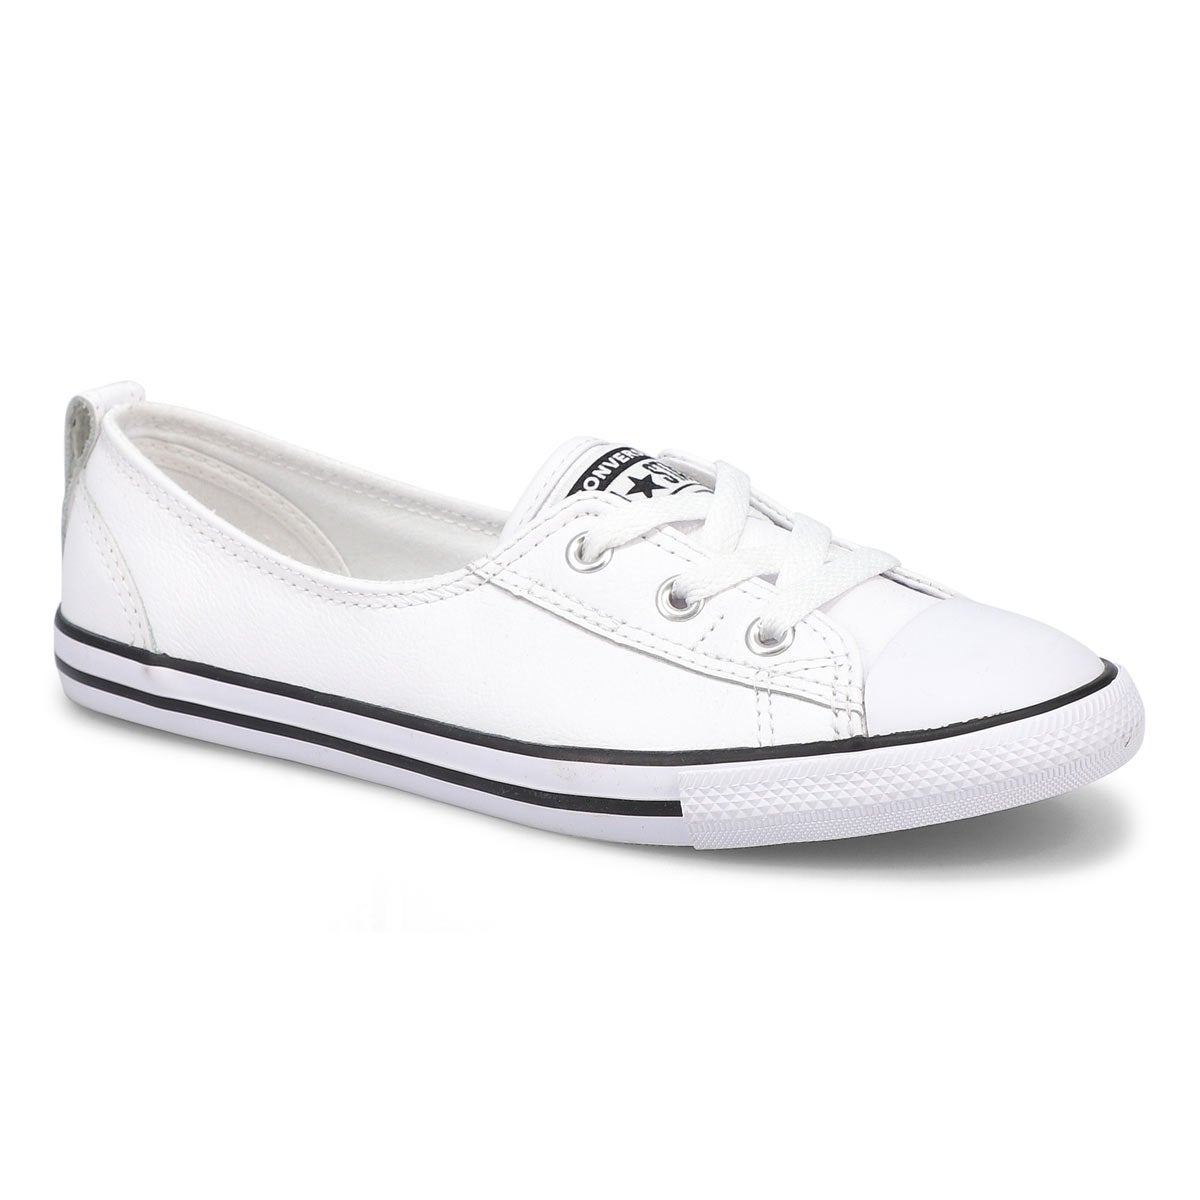 Women's CT ALL STAR BALLET LACE white sneakers